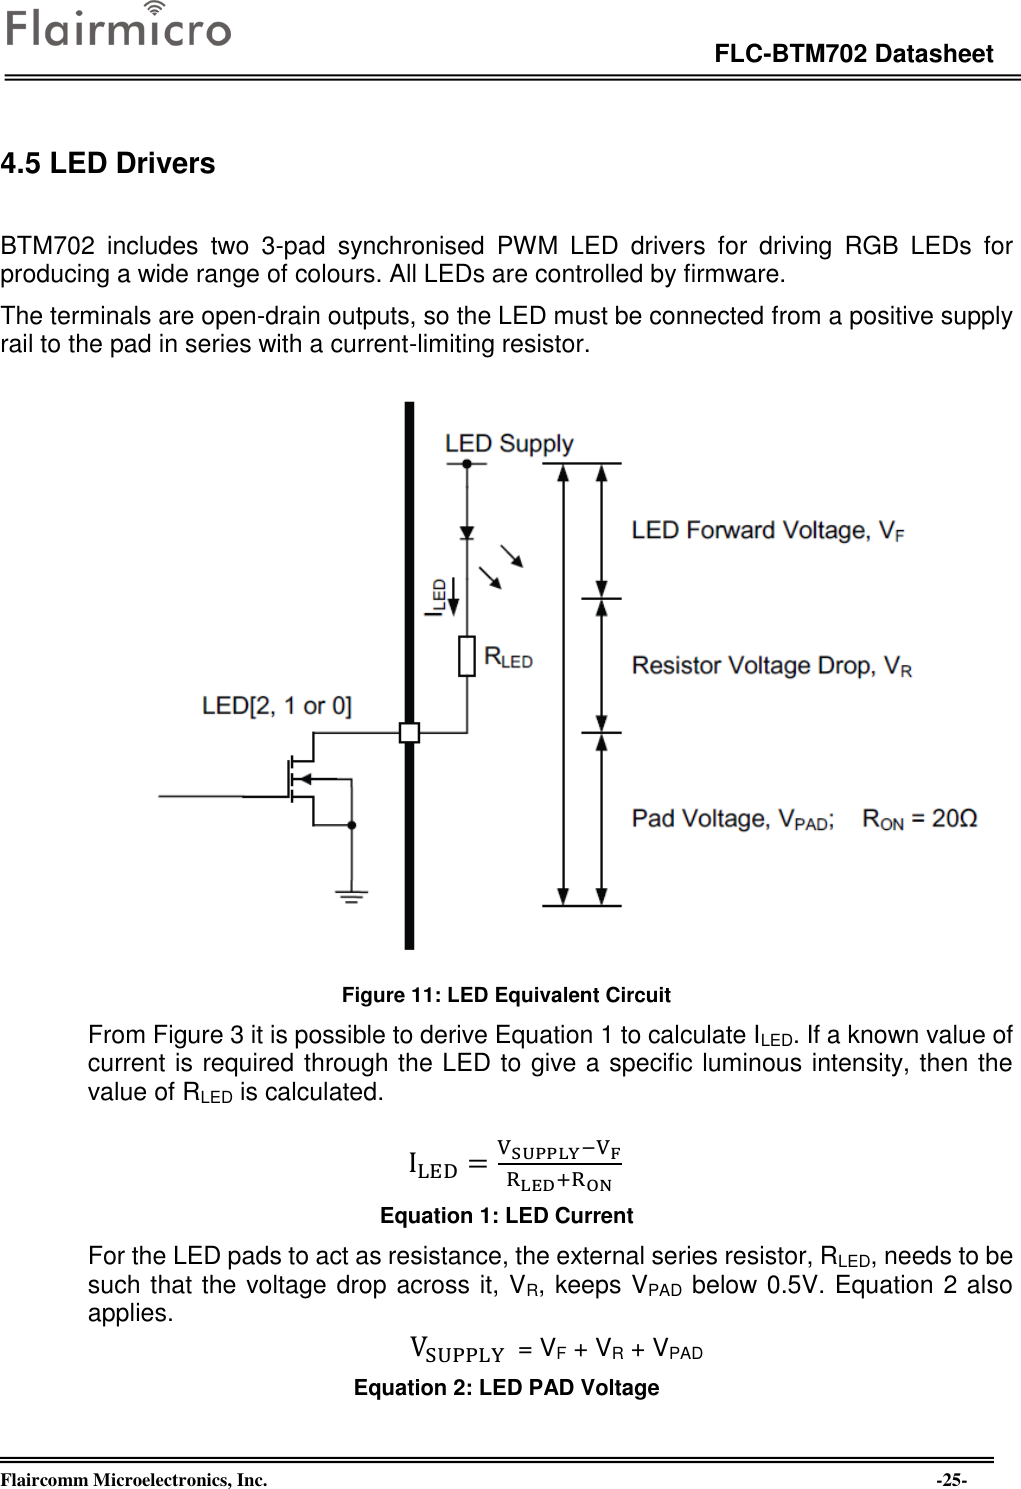 Flaircomm Microelectronics Btm702a Bluetooth Module Bt50 User Manual Current Limiting Resistor Calculator For Leds Page 25 Of